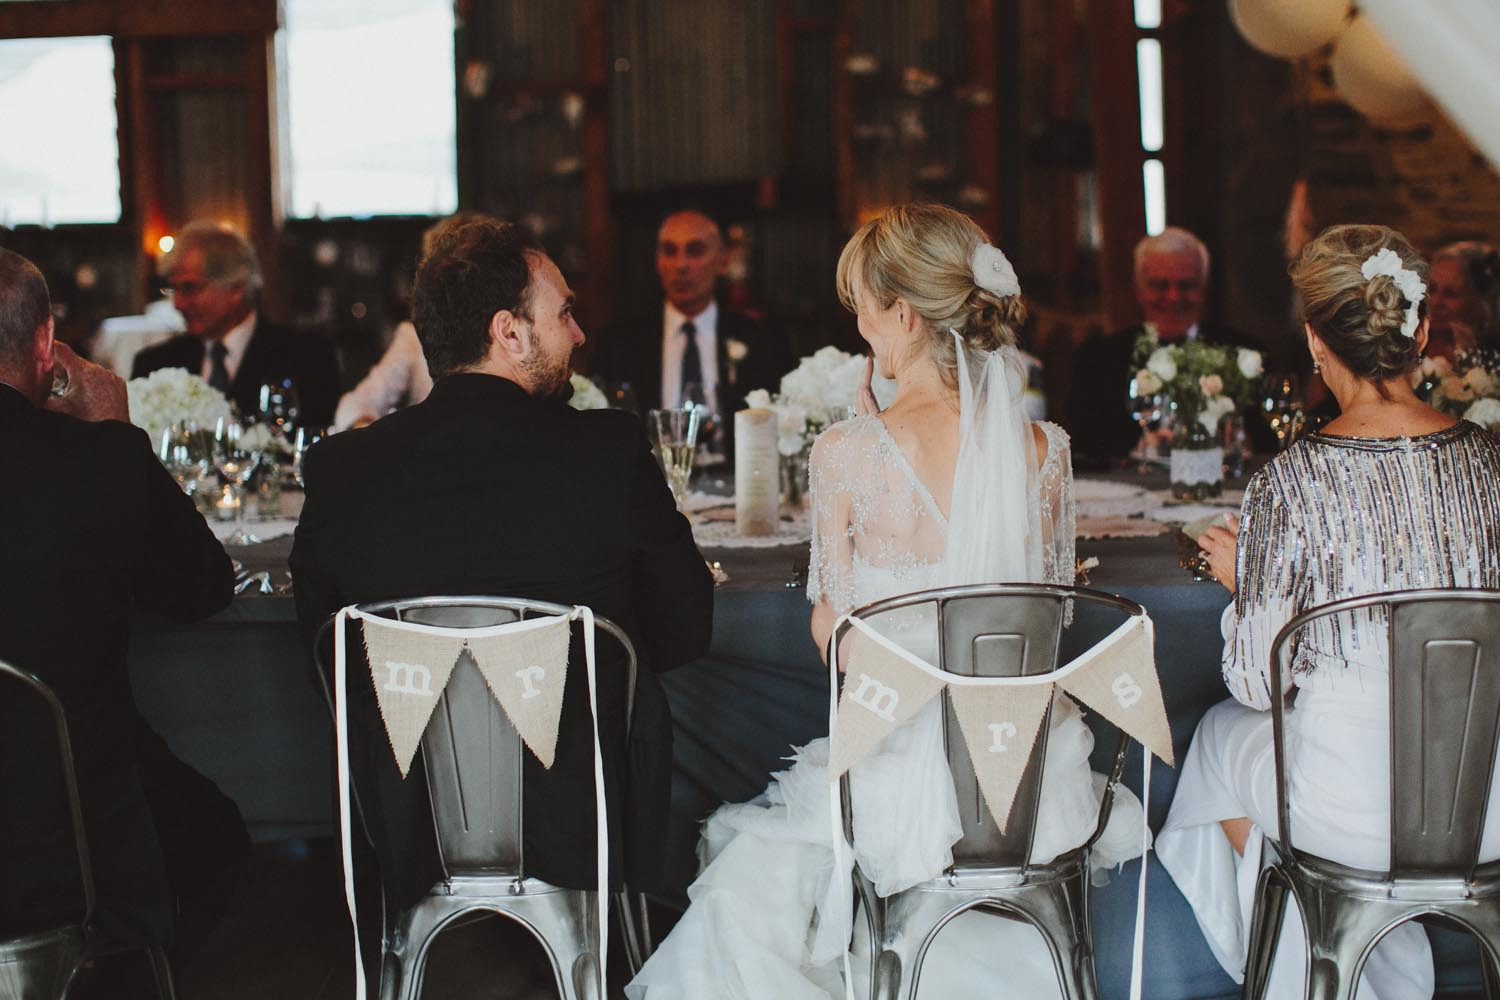 justin_aaron_queenstown_thelby_domain_new_zealand_wedding_sally_lachlan-123.jpg